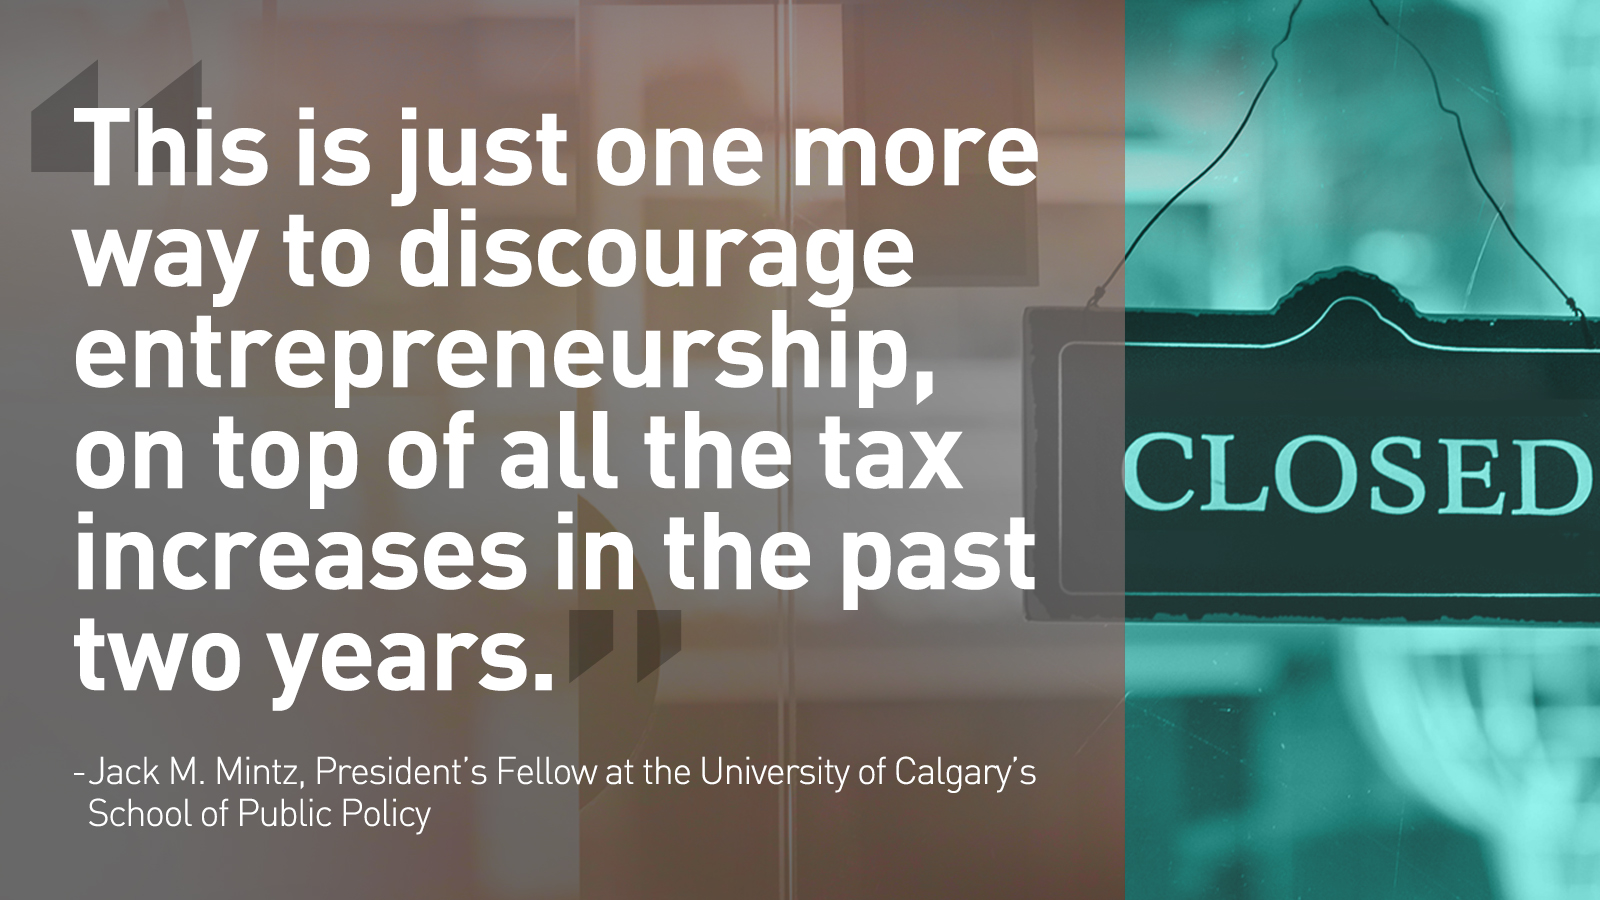 WARKENTIN CONDEMNS TAX HIKE ON JOB CREATORS